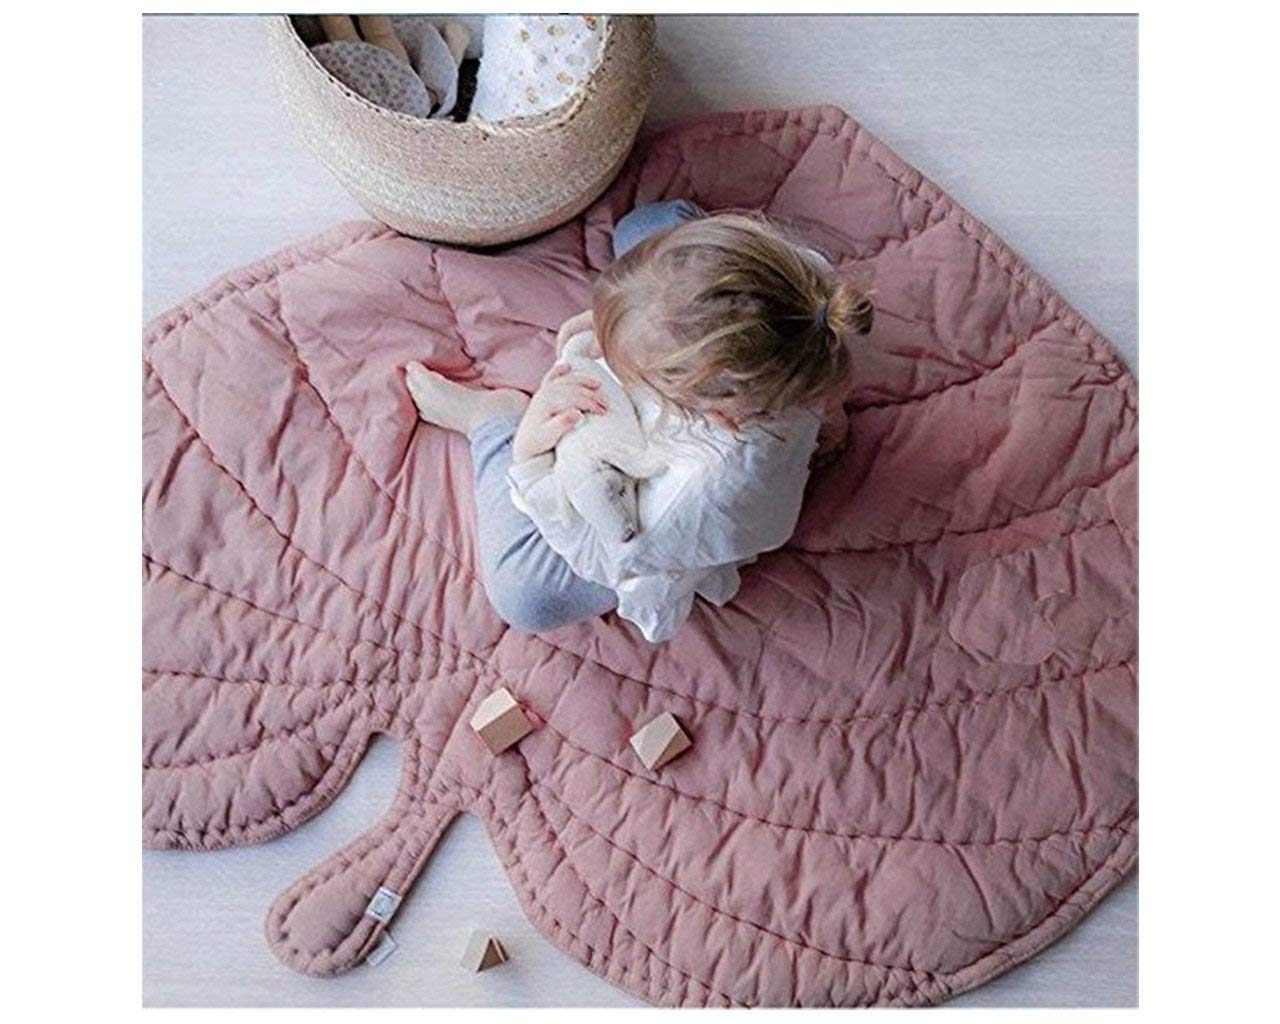 Baby Crawling Mat Leaf Shaped Round Rug Soft Cotton Filling Quilt Blanket Carpet Pink Sleeping Pad Rug Room Decoration 42.9 in